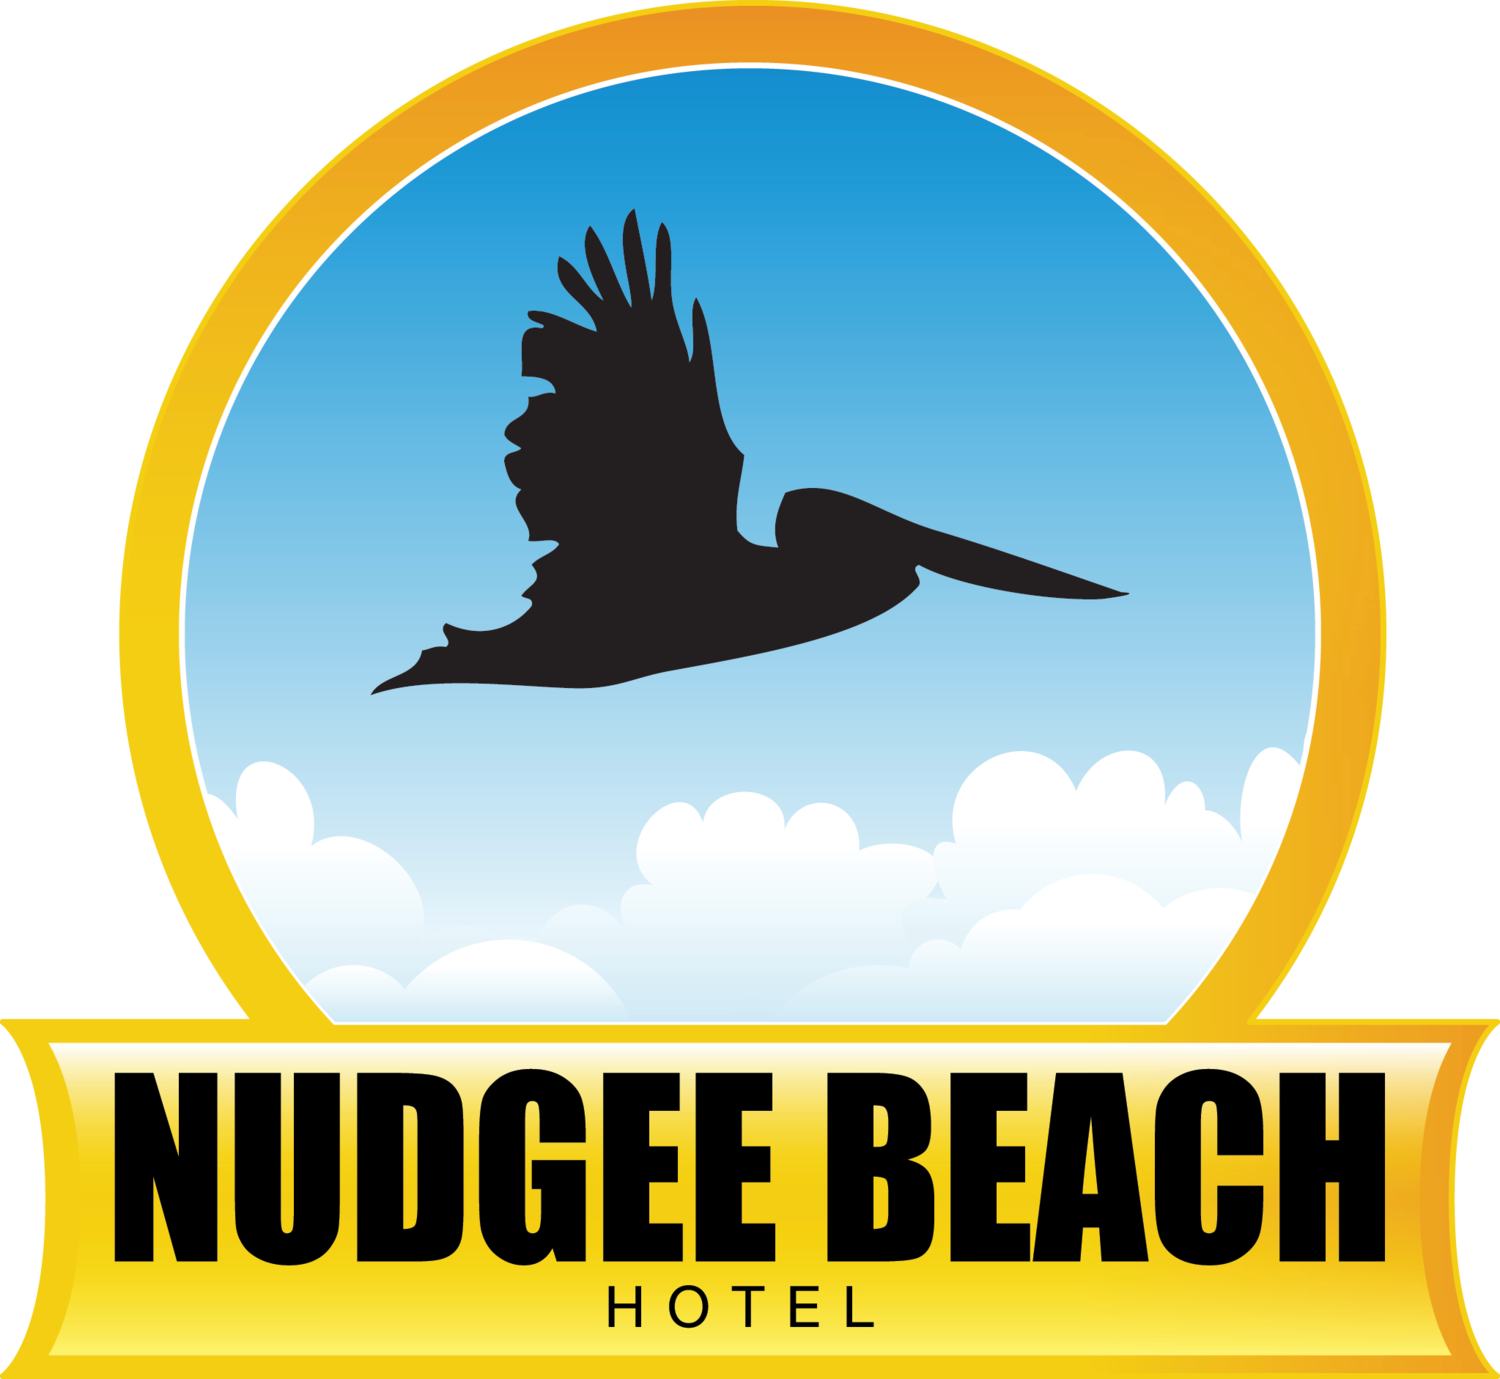 Nudgee Beach Hotel, Nudgee, QLD